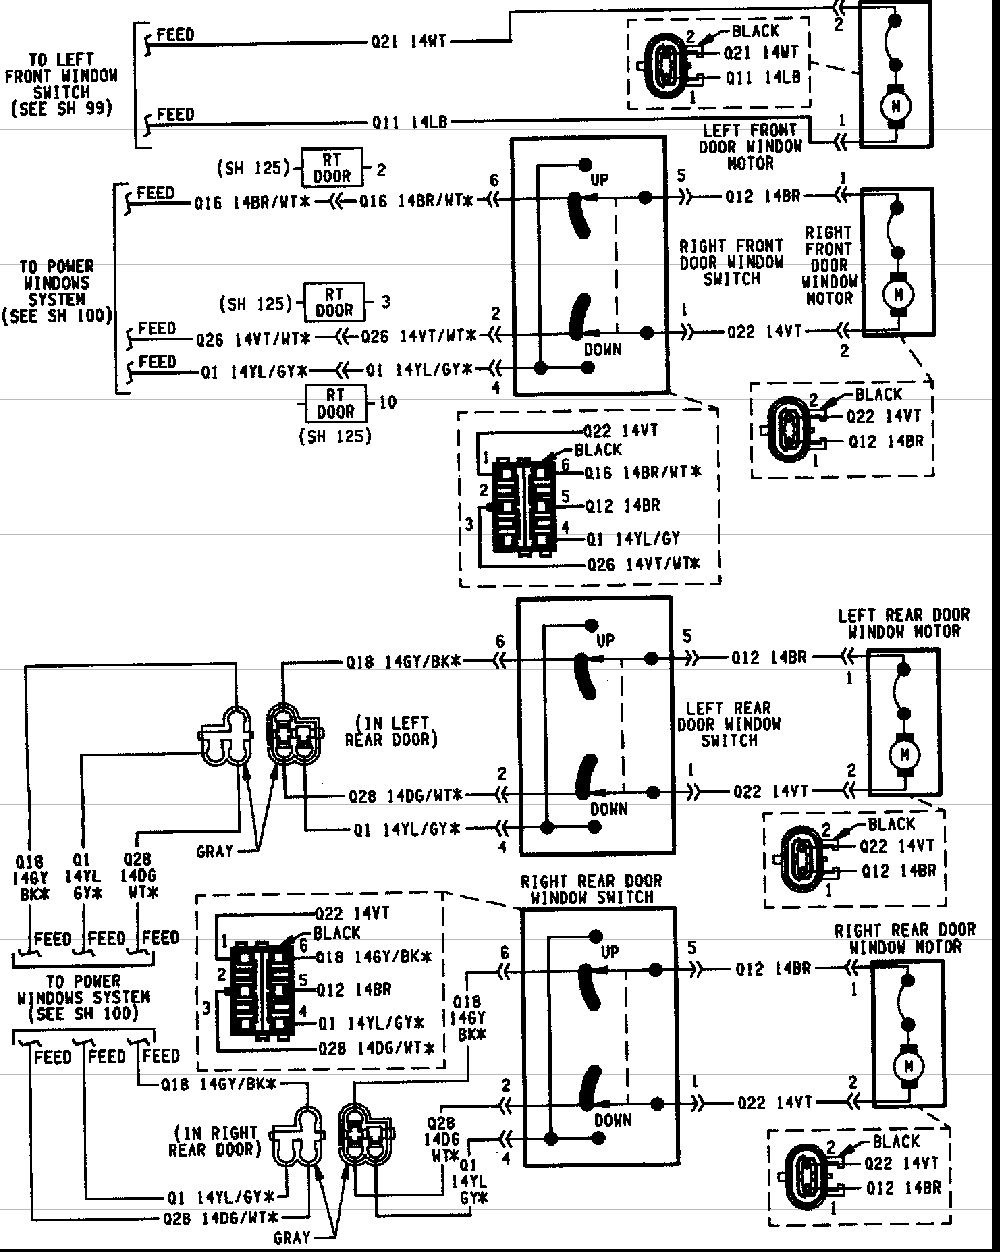 1996 jeep grand cherokee alarm wiring diagram wiring diagram 1996 jeep grand cherokee alarm wiring diagram amazing 1996 jeep grand cherokee pcm wiring diagram